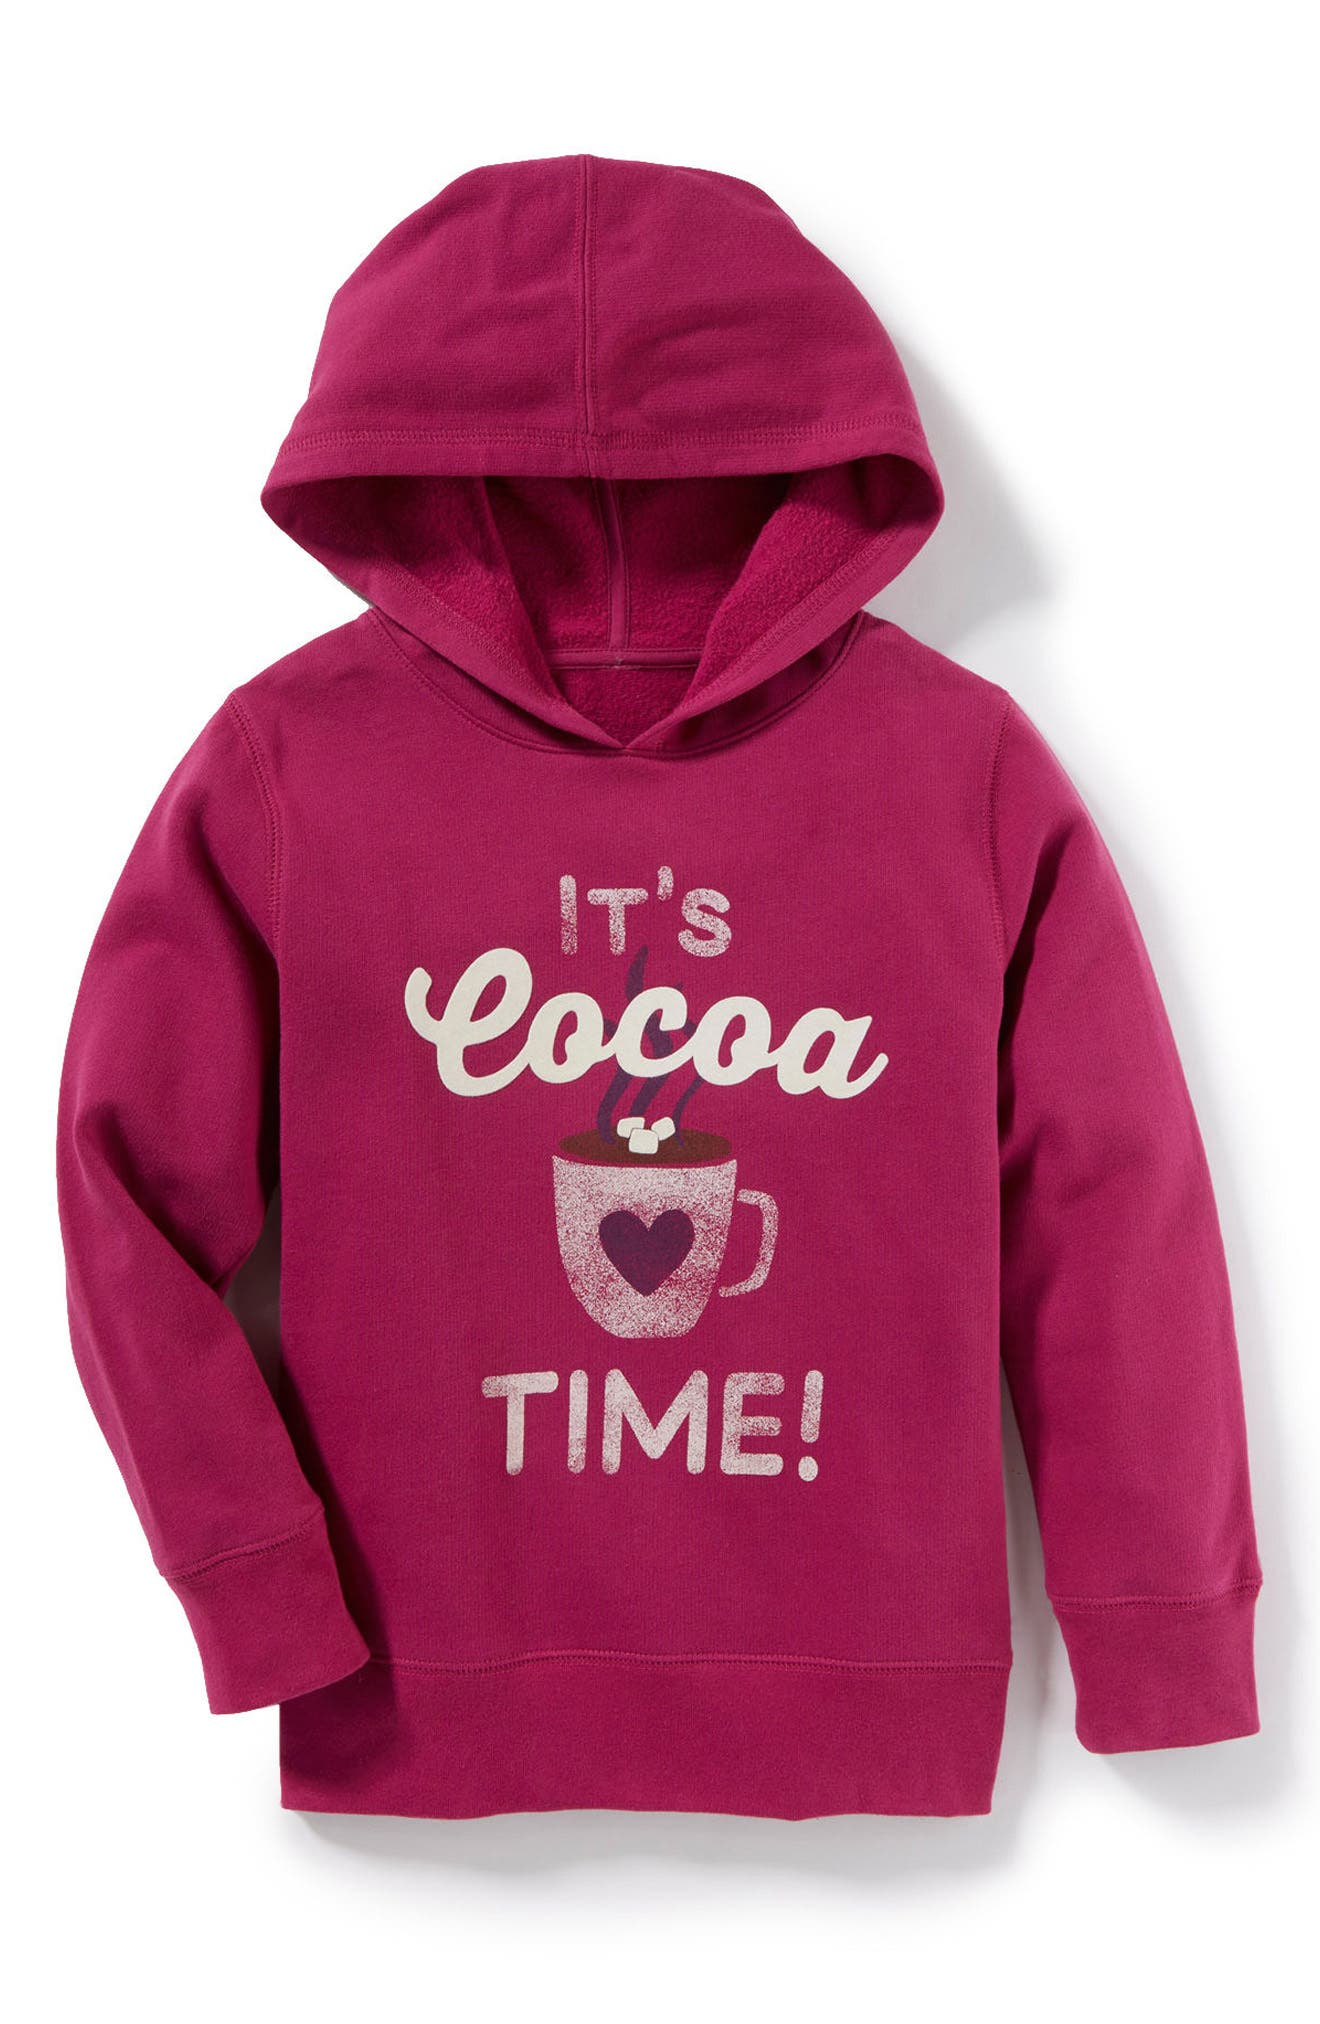 Peek It's Cocoa Time Graphic Hoodie,                             Main thumbnail 1, color,                             511